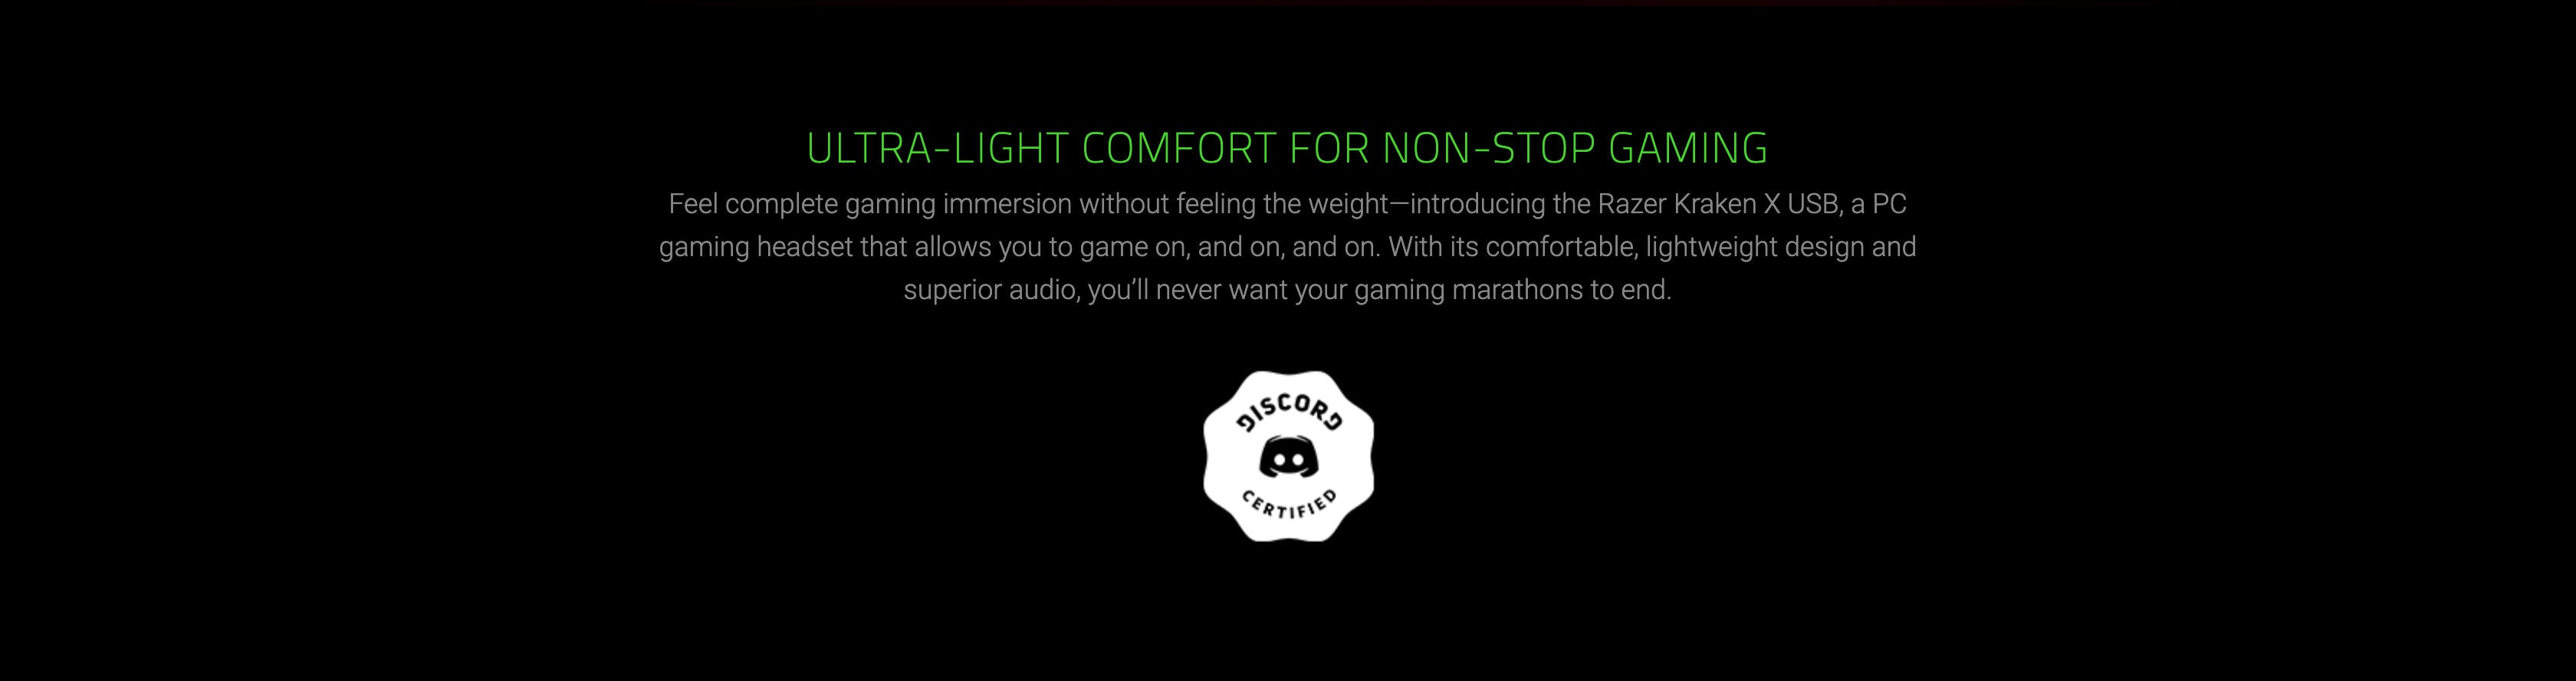 ULTRA-LIGHT COMFORT FOR NON-STOP GAMING